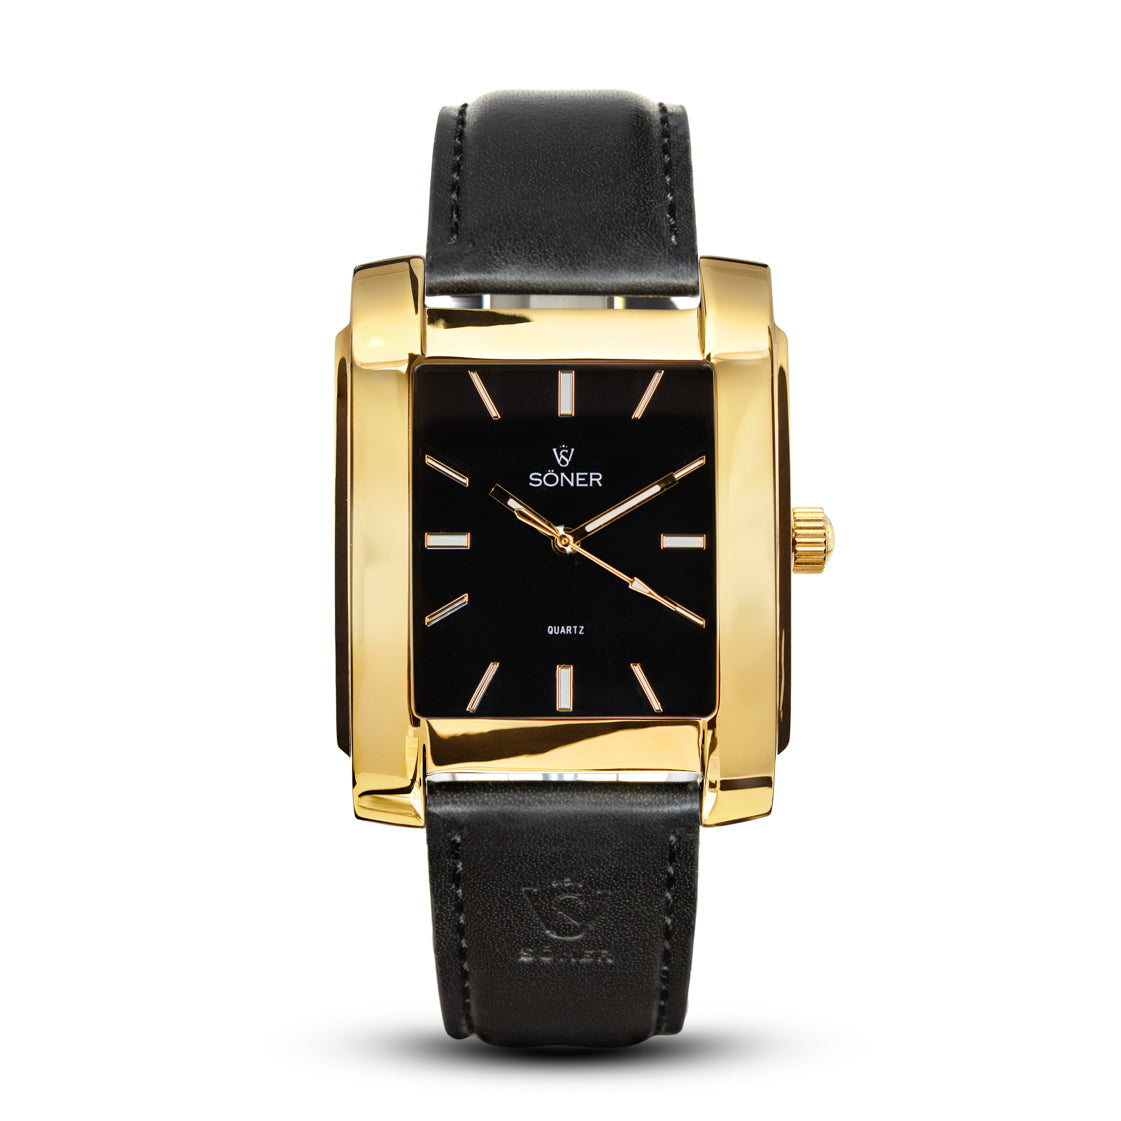 SQUARE MEN'S WATCH - LEGACY O Polished gold - Black dial